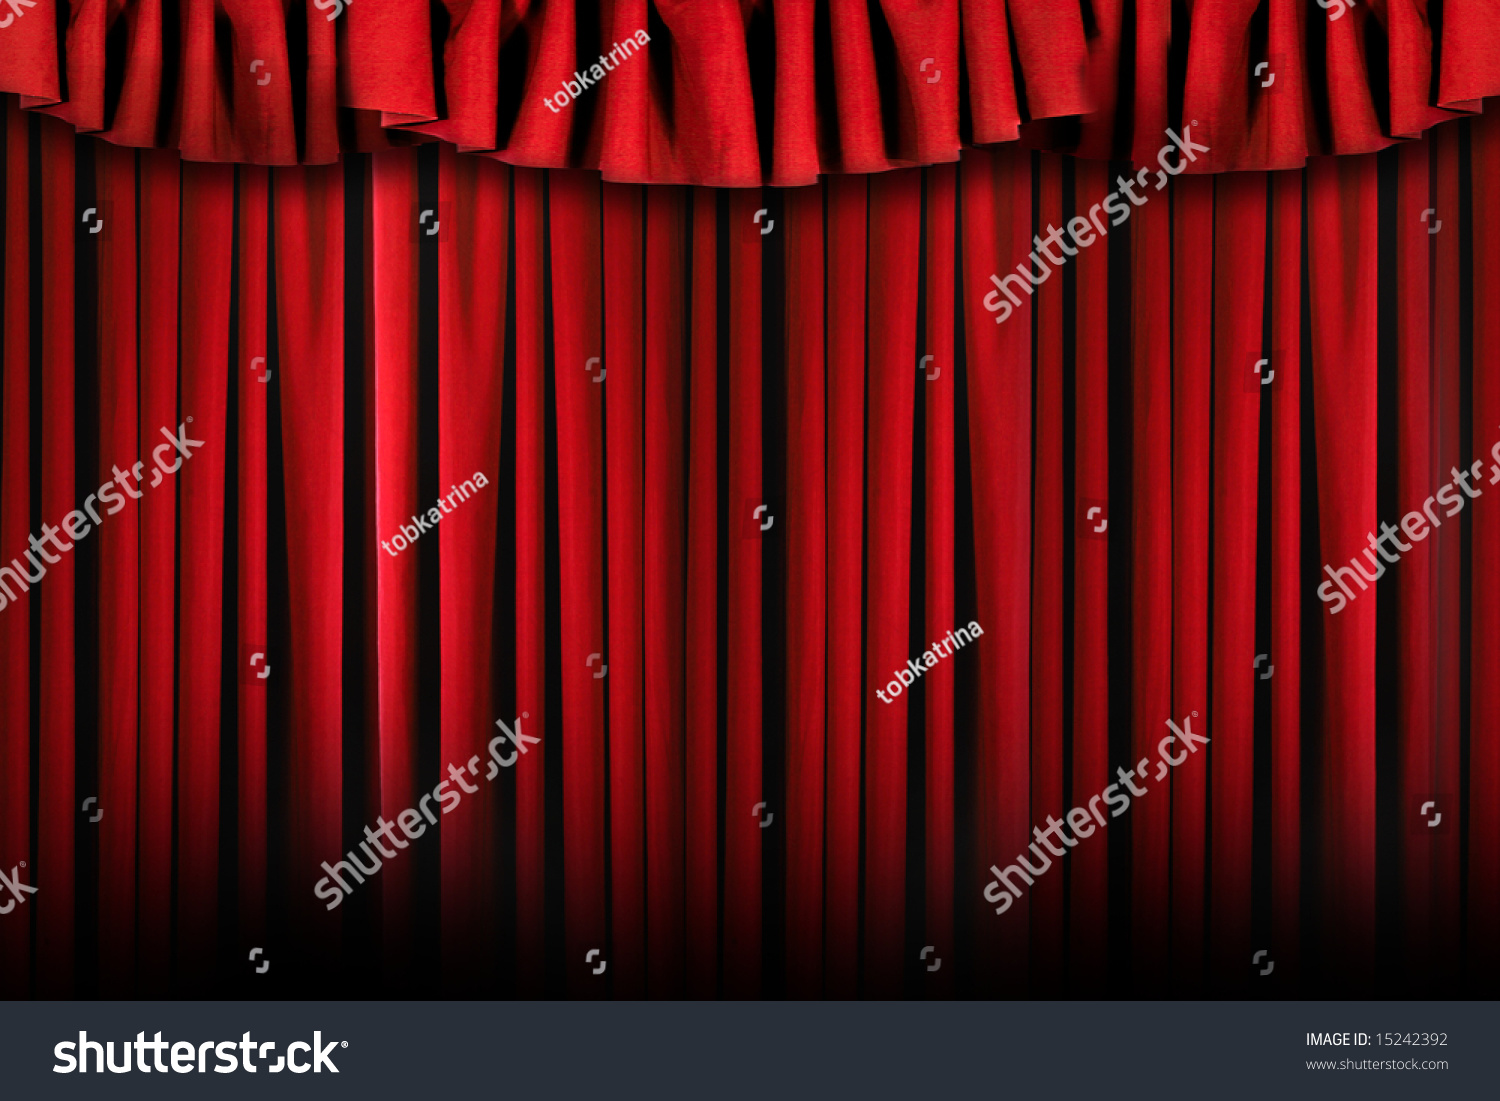 Stock photo dramatic red old fashioned elegant theater stage stock - Theater Stage Drapes With Top Swag